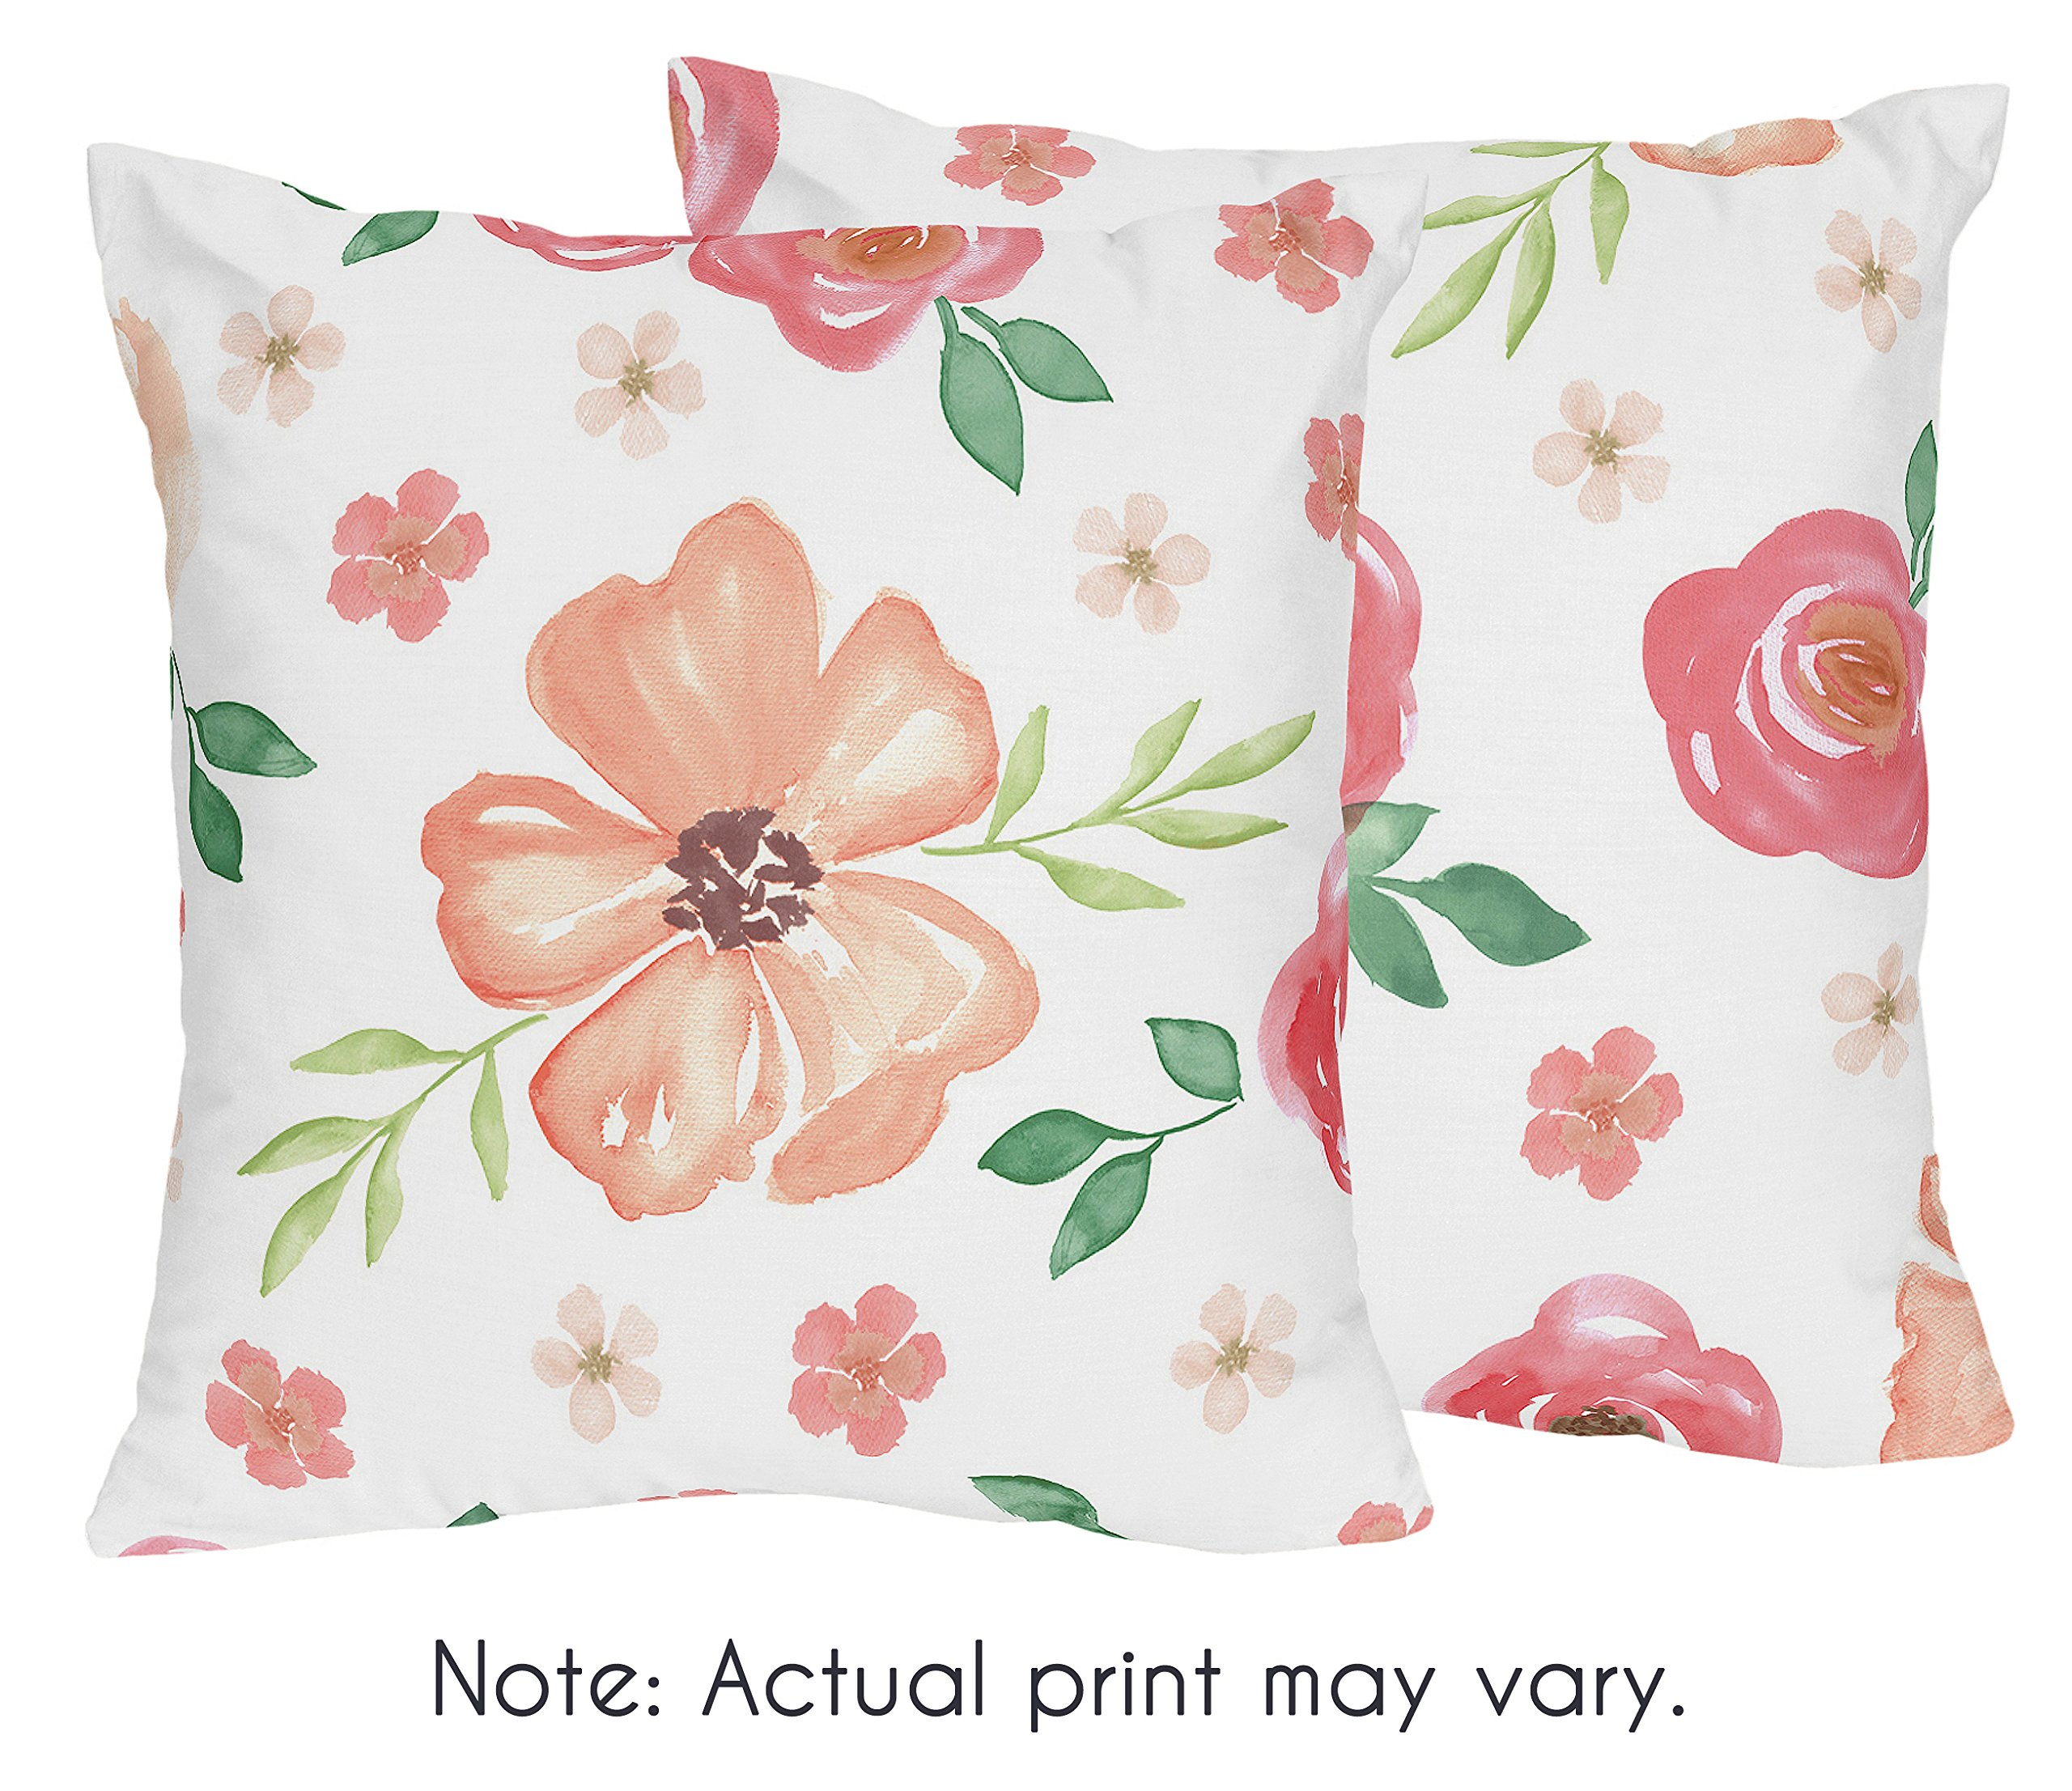 Sweet Jojo Designs Peach and Green Decorative Accent Throw Pillows for Watercolor Floral Collection - Set of 2 - Pink Rose Flower